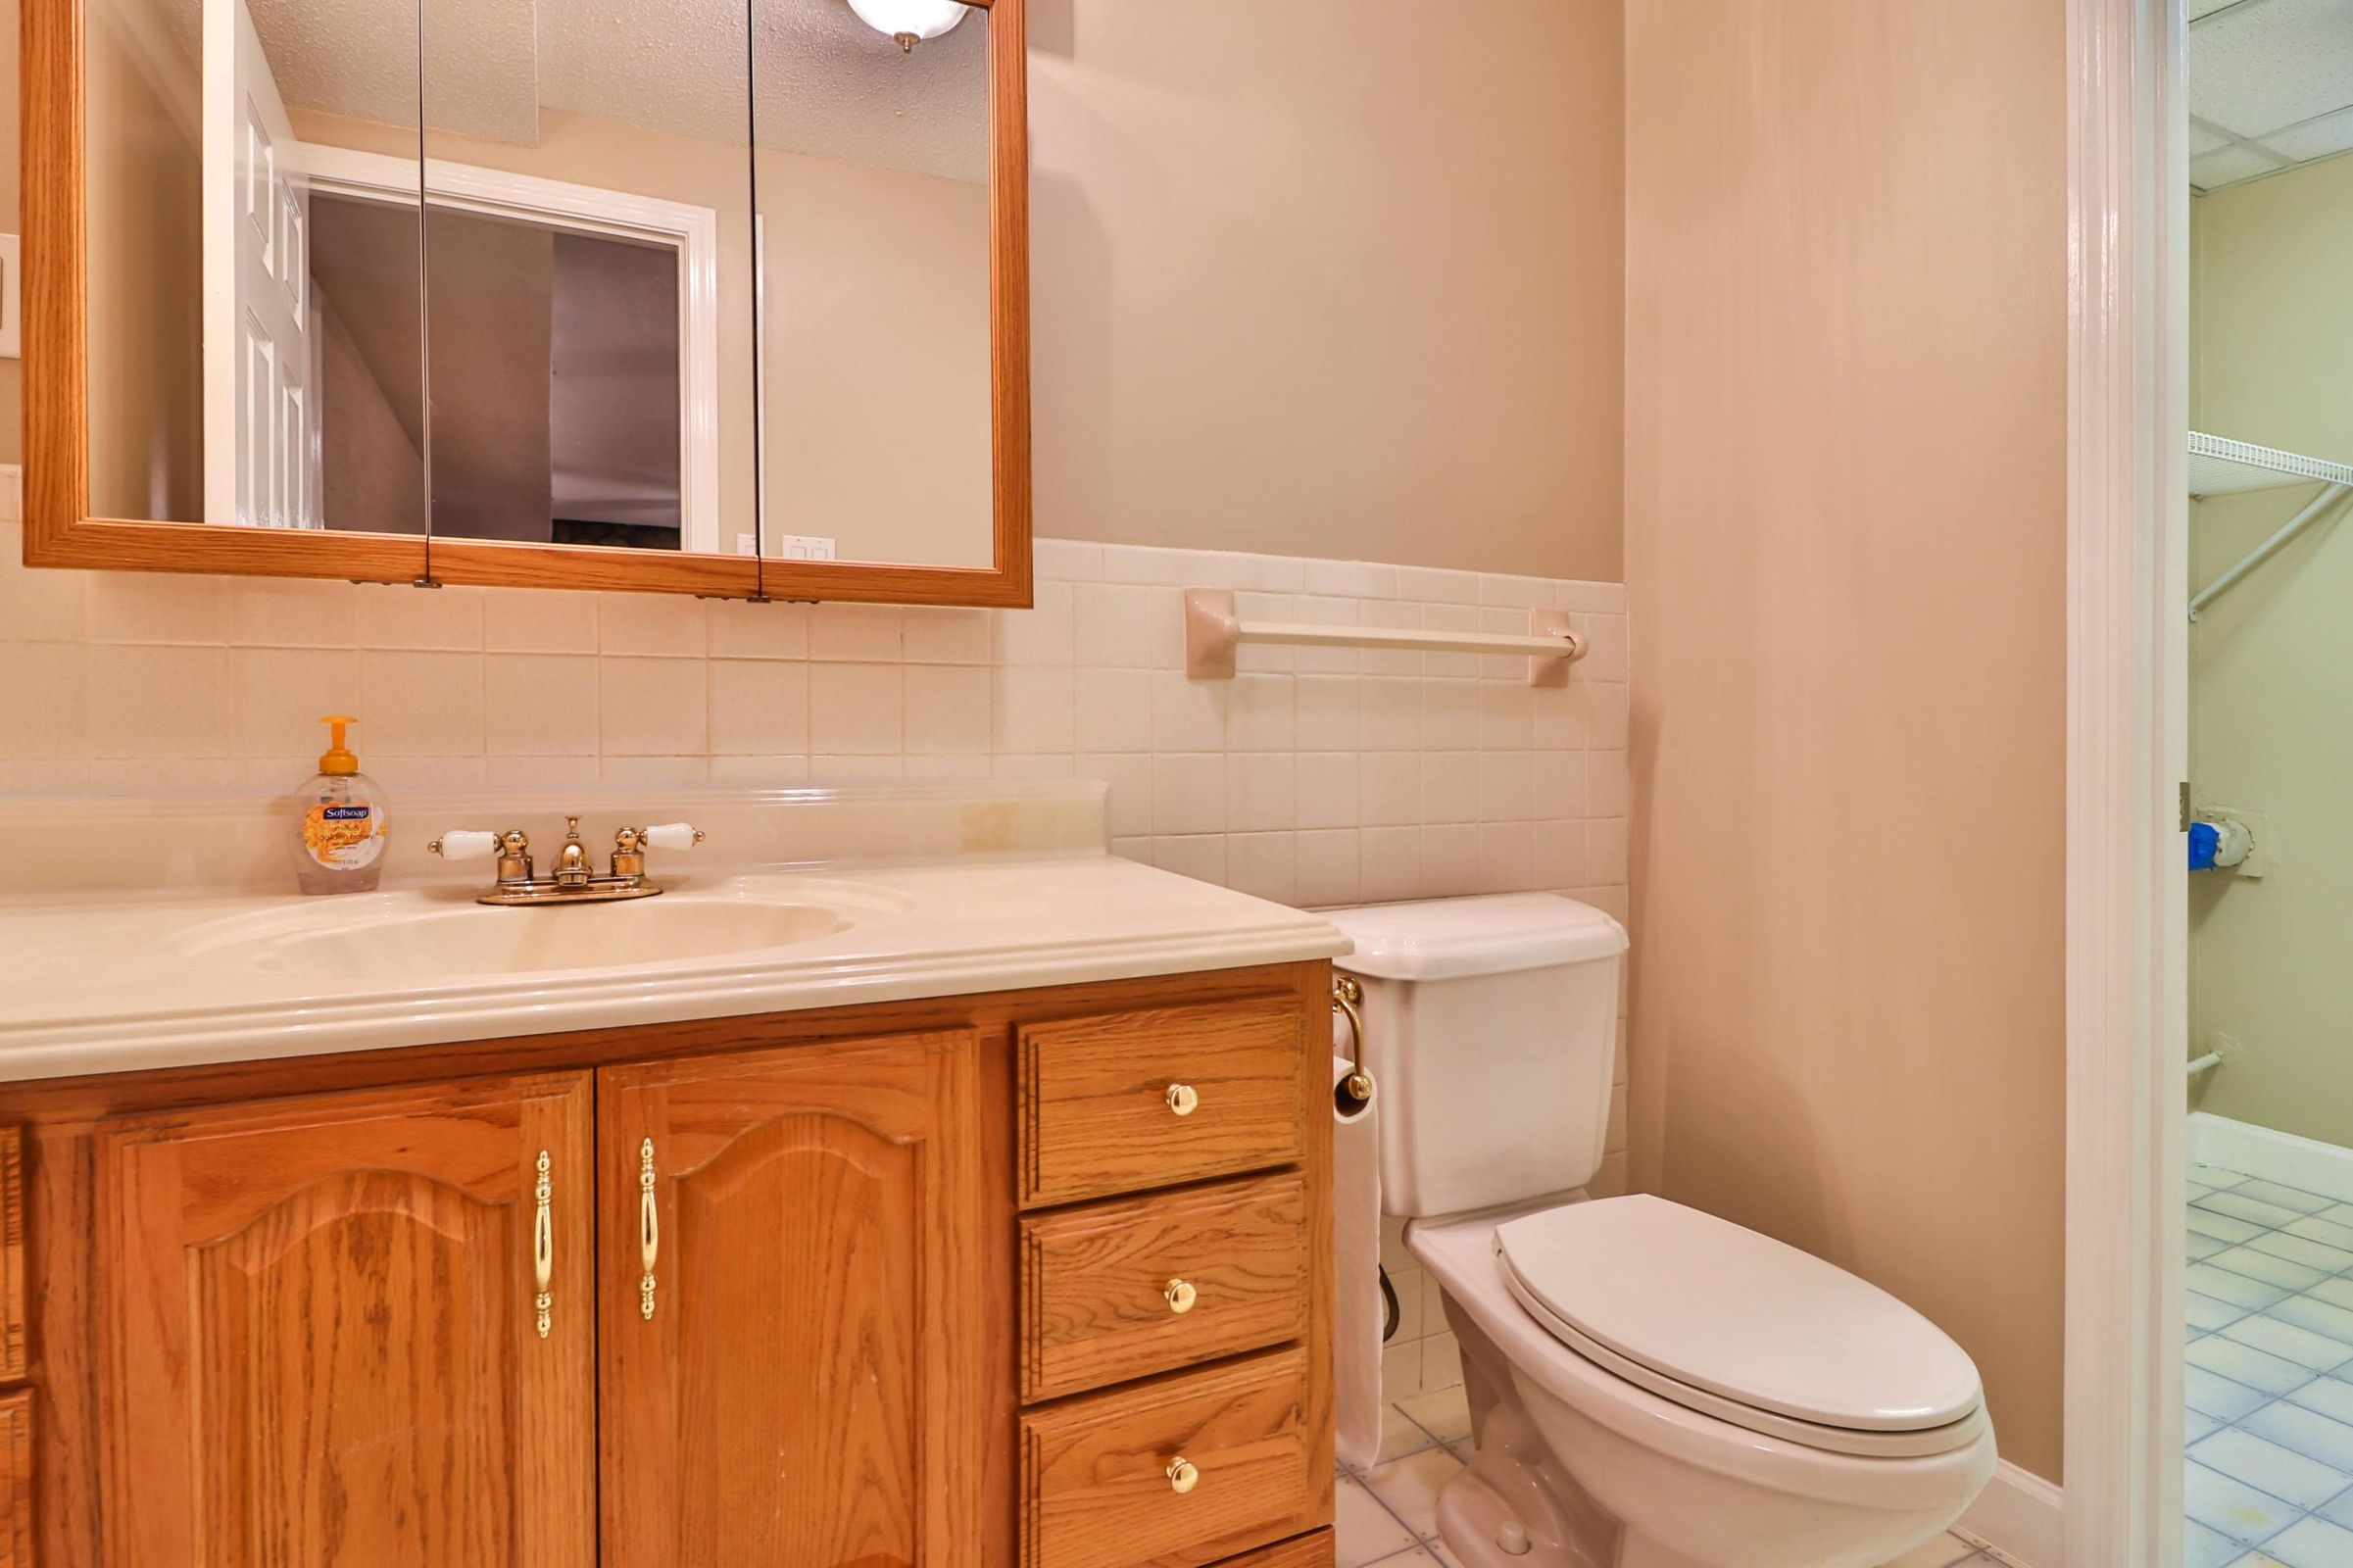 1/2 Bath in Basement